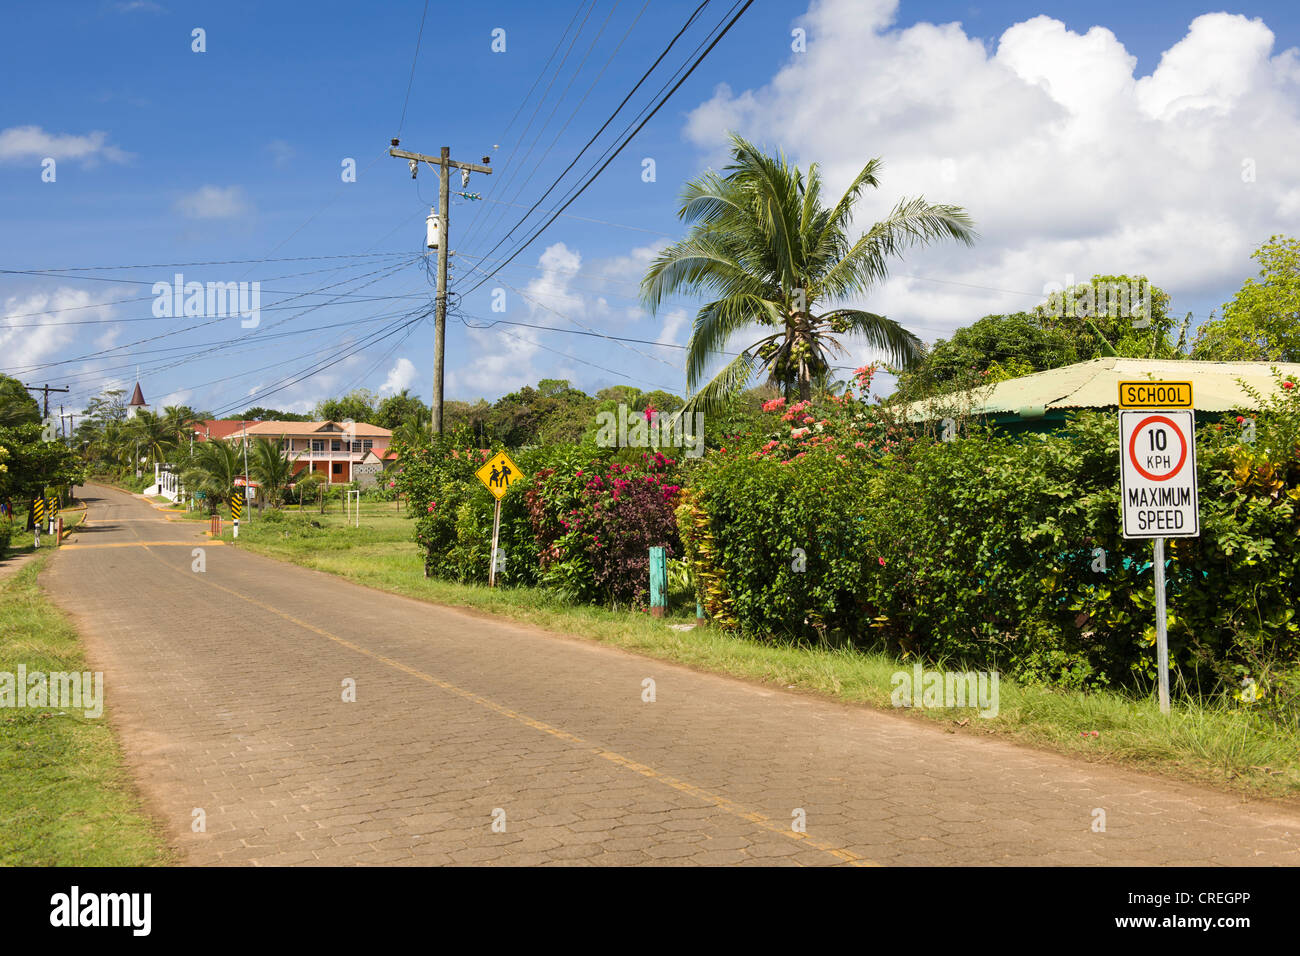 Road traffic signs in English in front of a school, Big Corn Island, Caribbean Sea, Nicaragua, Central America Stock Photo